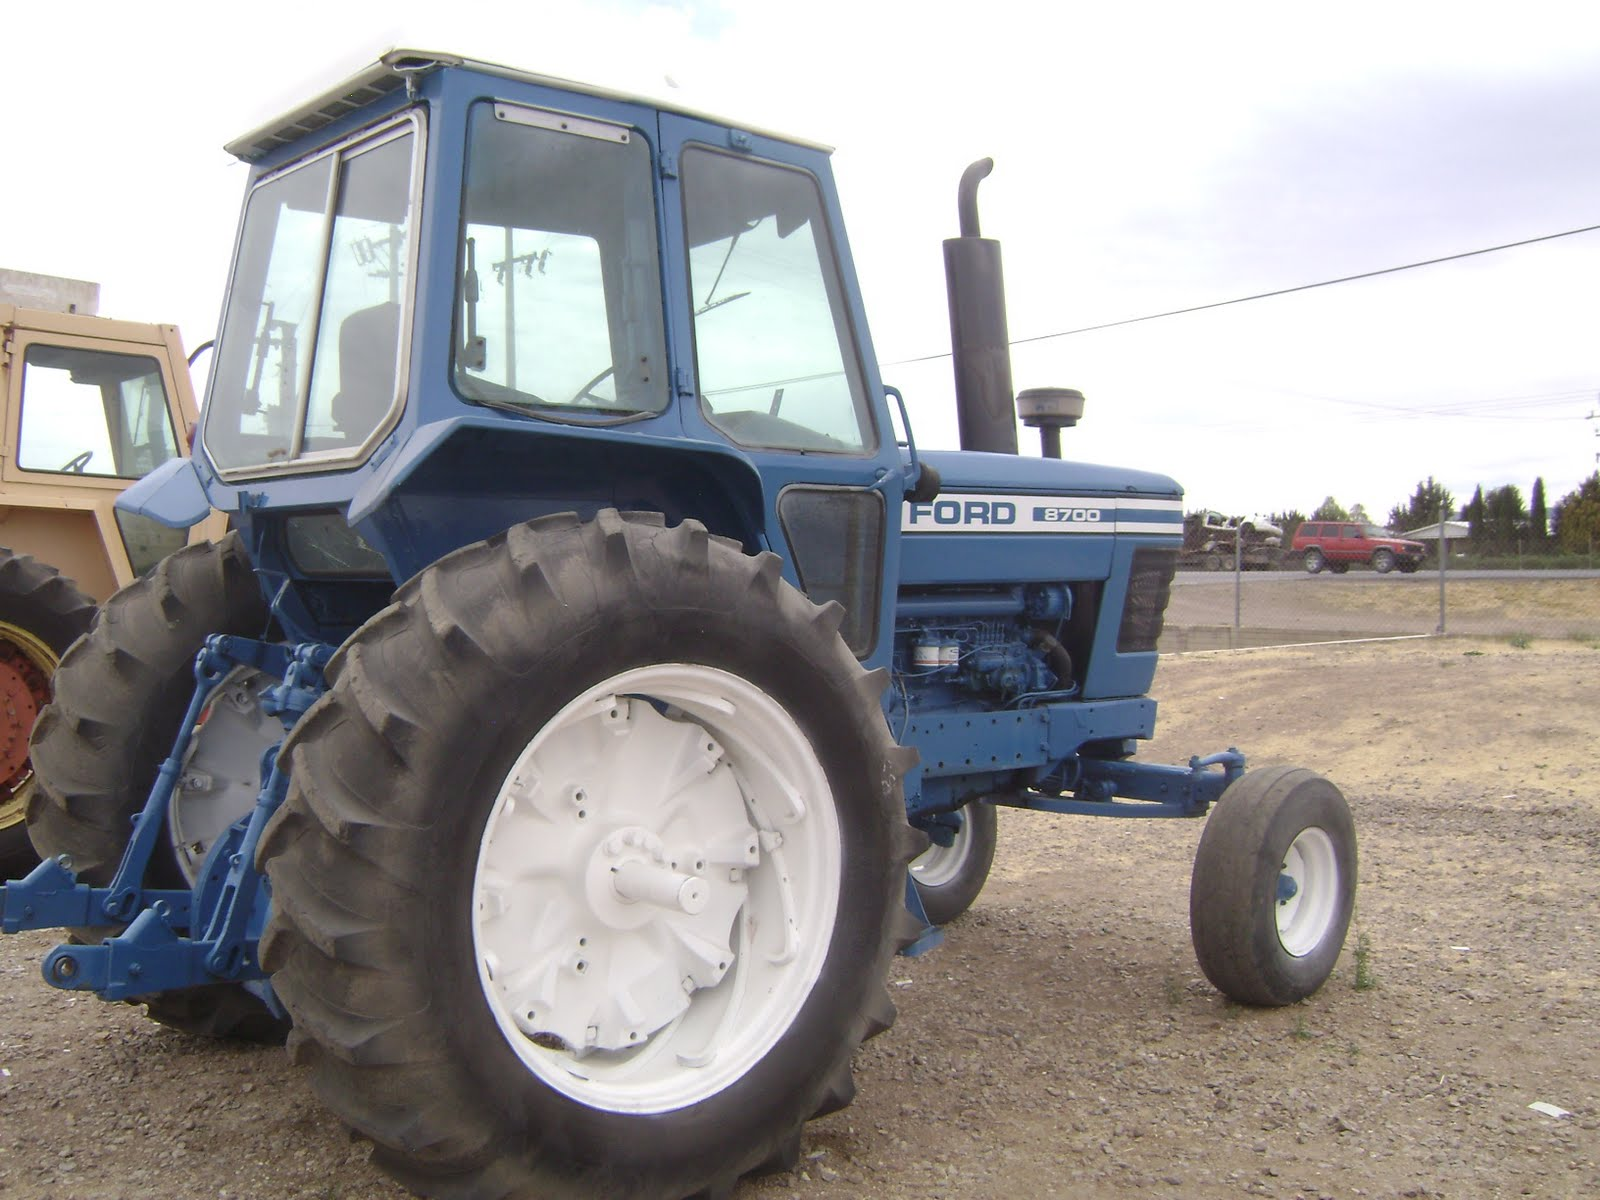 Ford 8700 Tractor : Maquinaria agricola industrial tractor ford